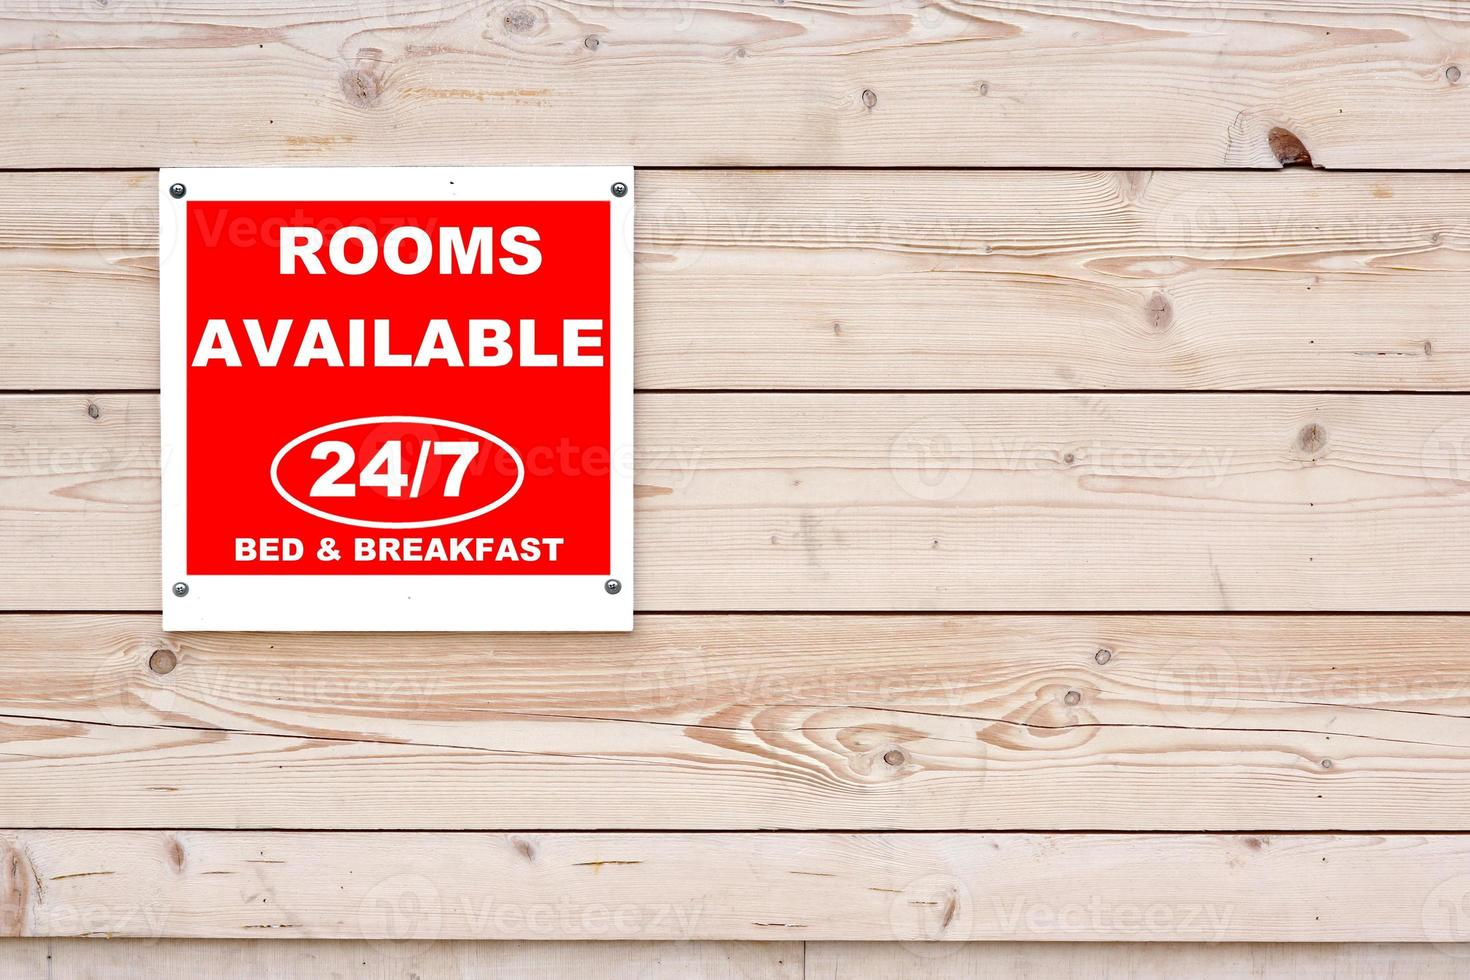 ROOMS AVAILABLE 24/7 BED & BREAKFAST Sign photo